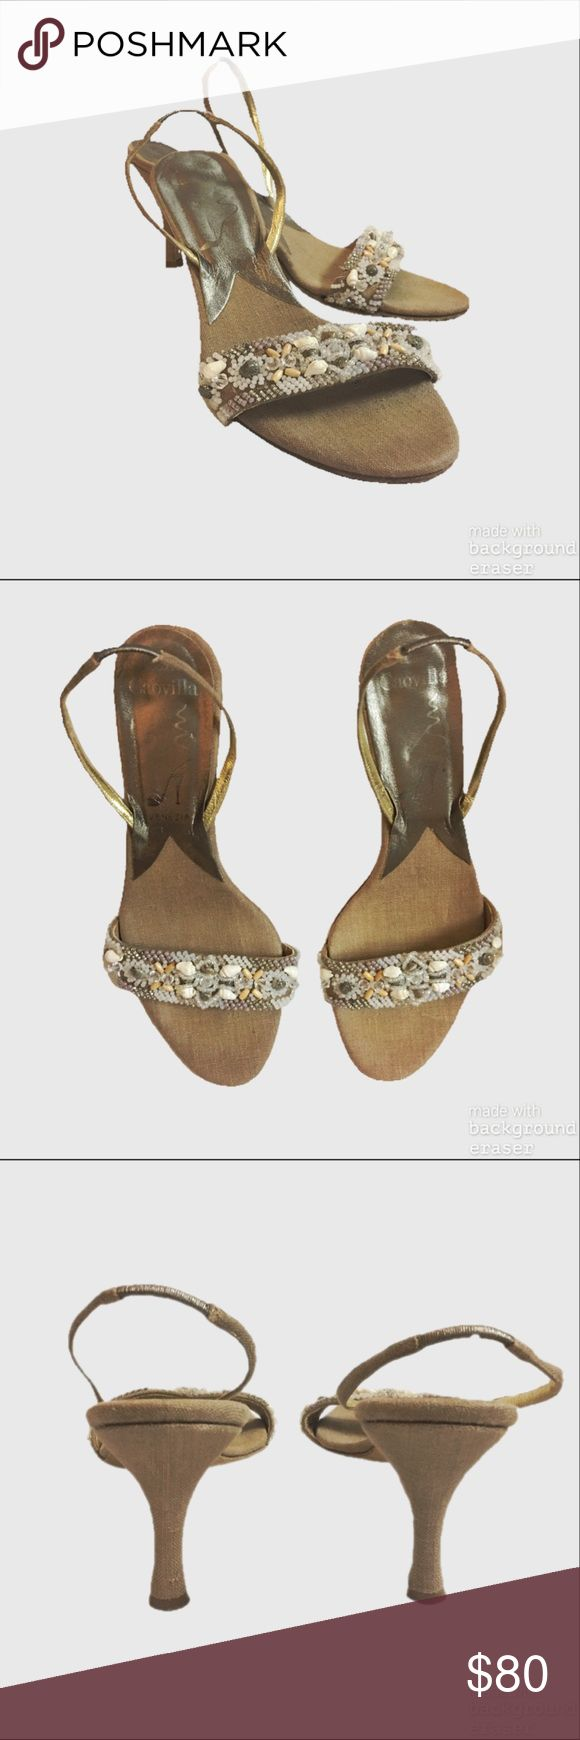 Vintage Rene Caovilla Slingback Sandals Super cute and comfortable vintage slingback sandals. Has beading and seashells covering front strap and an elastic slingback strap. Soles have wear but still have plenty of life left! Rene Caovilla Shoes